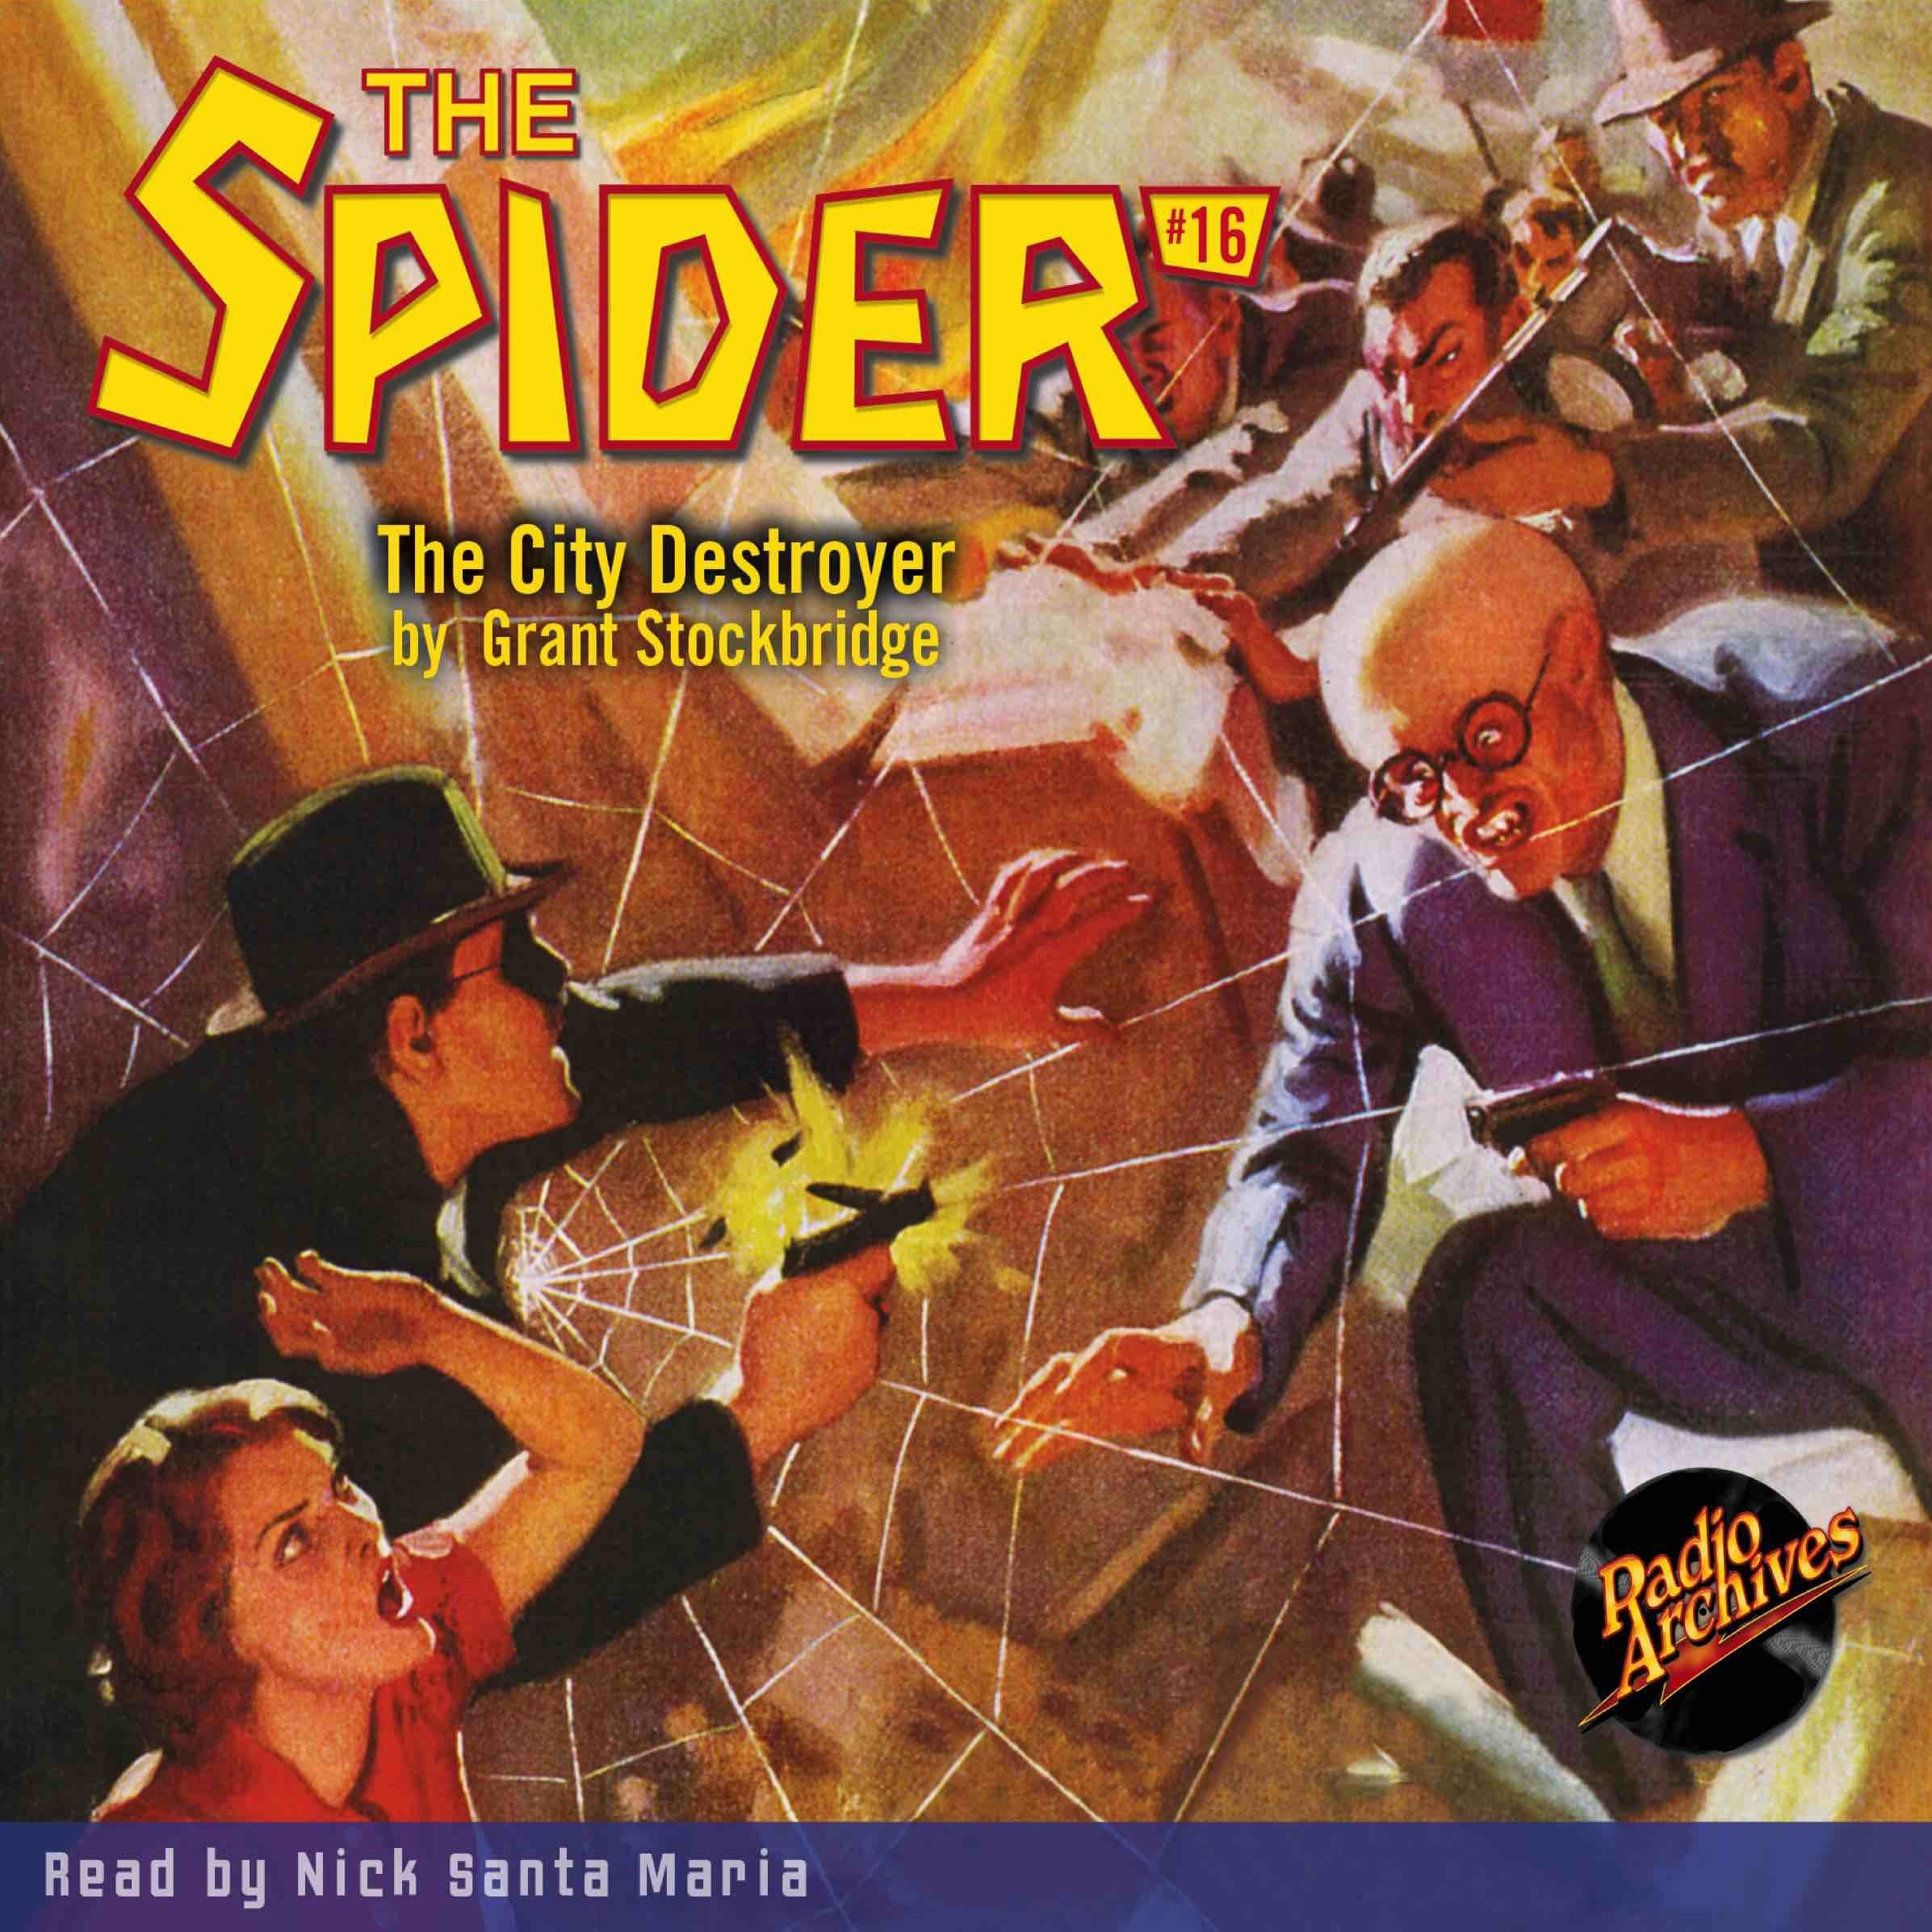 Printable Spider #16, The: The City Destroyer Audiobook Cover Art